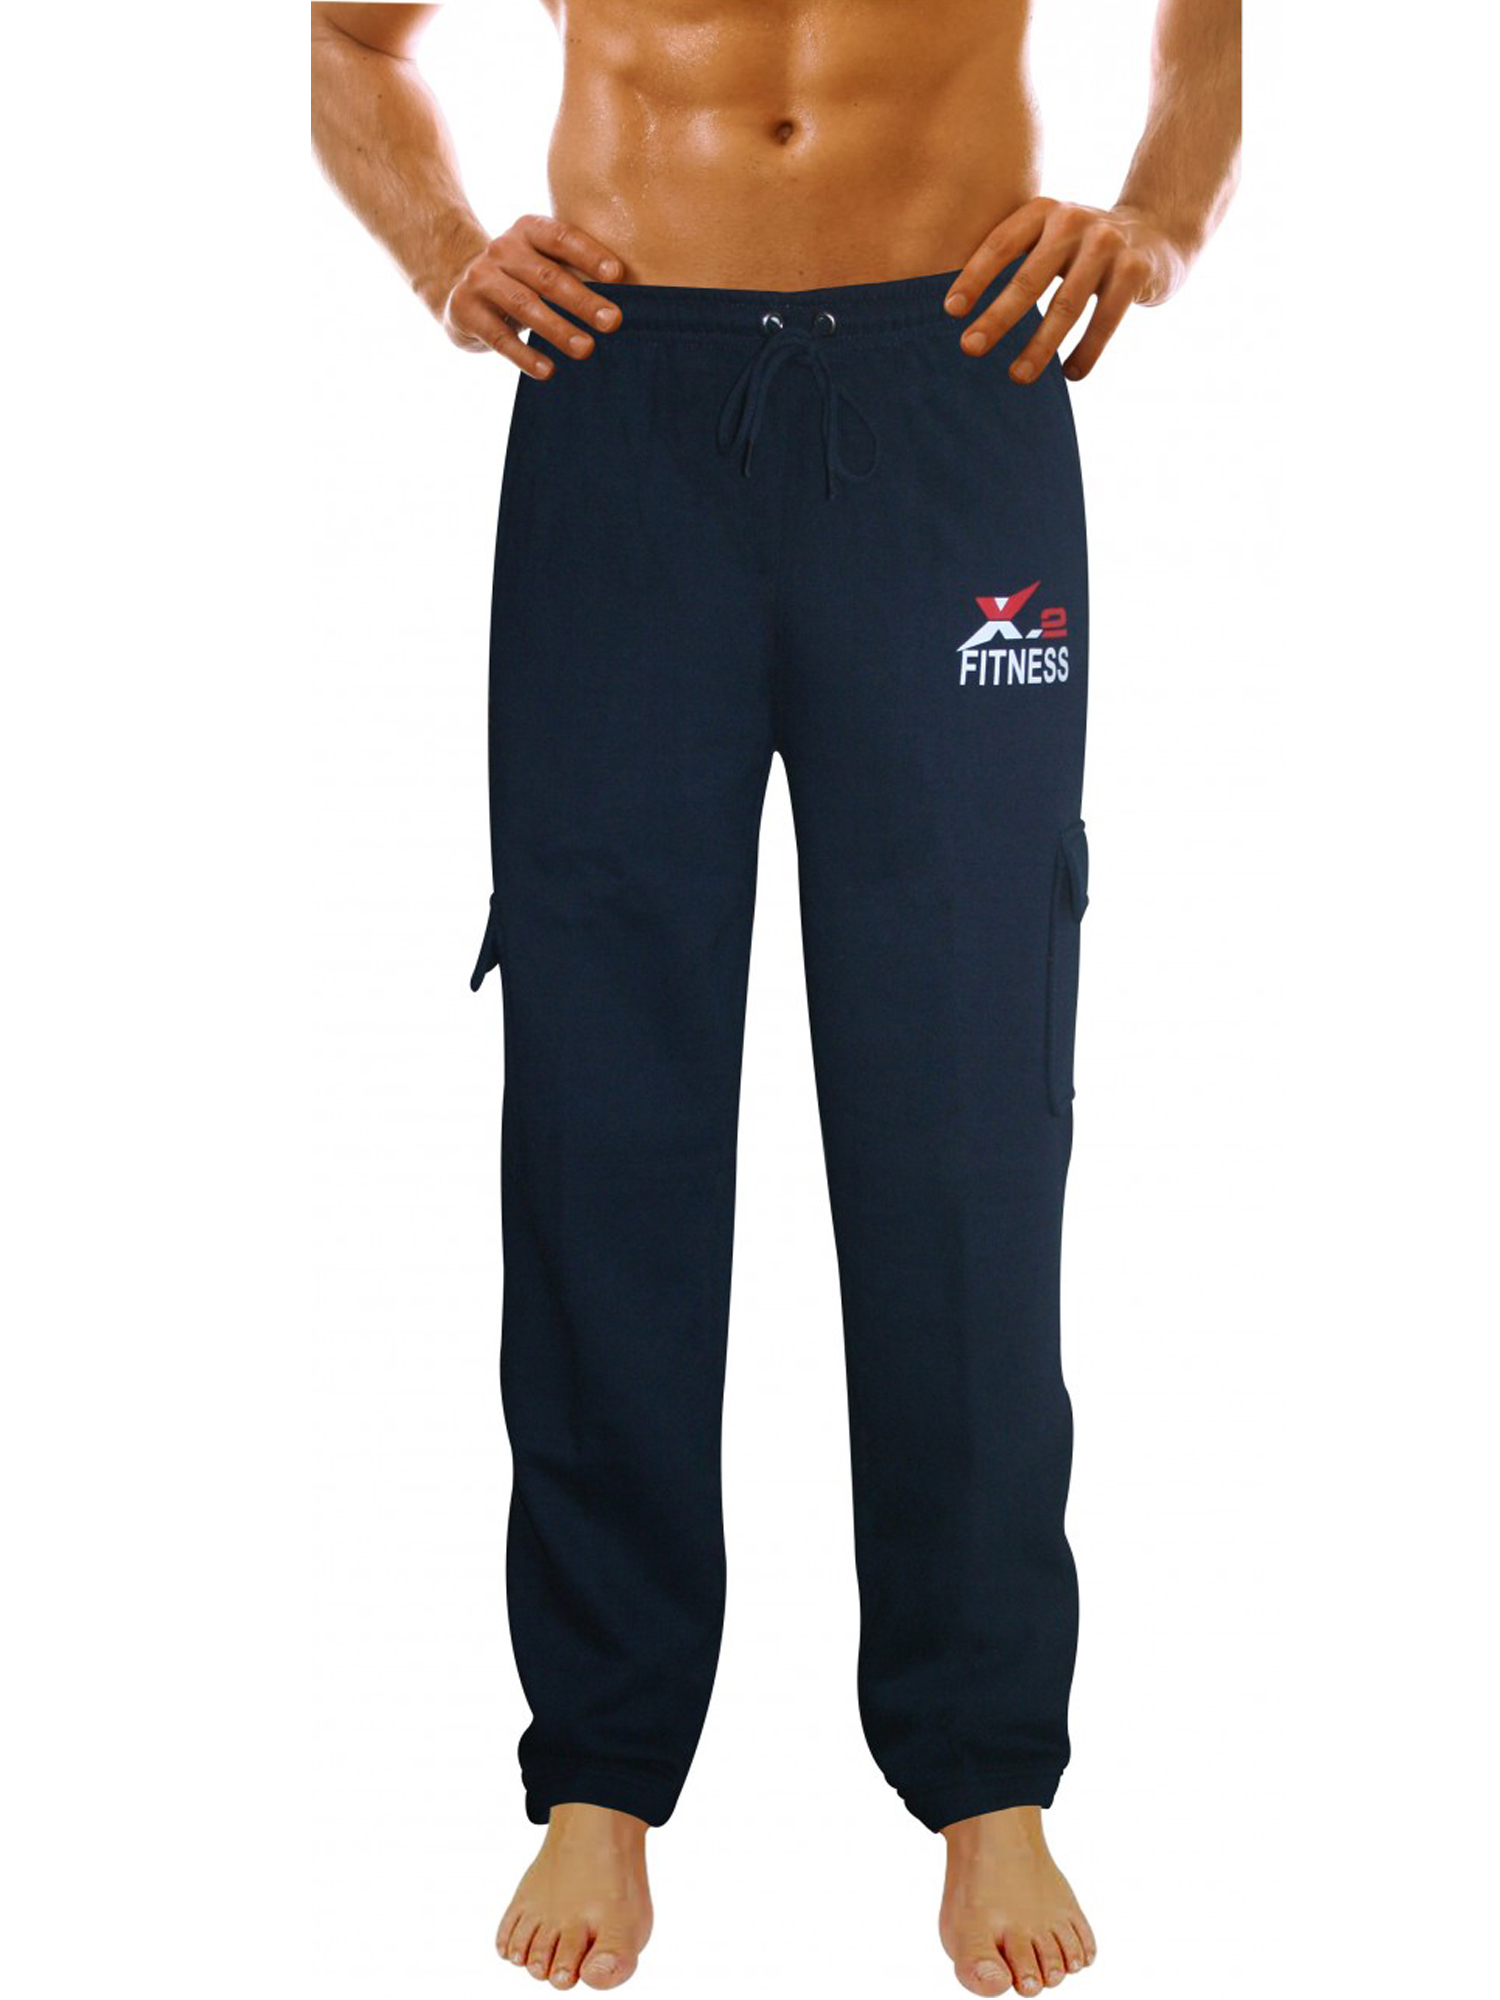 X-2 Men's Fleece Active Joggers Sweatpants Tracksuit Running Athletic Pants 5 Pockets Navy XXL